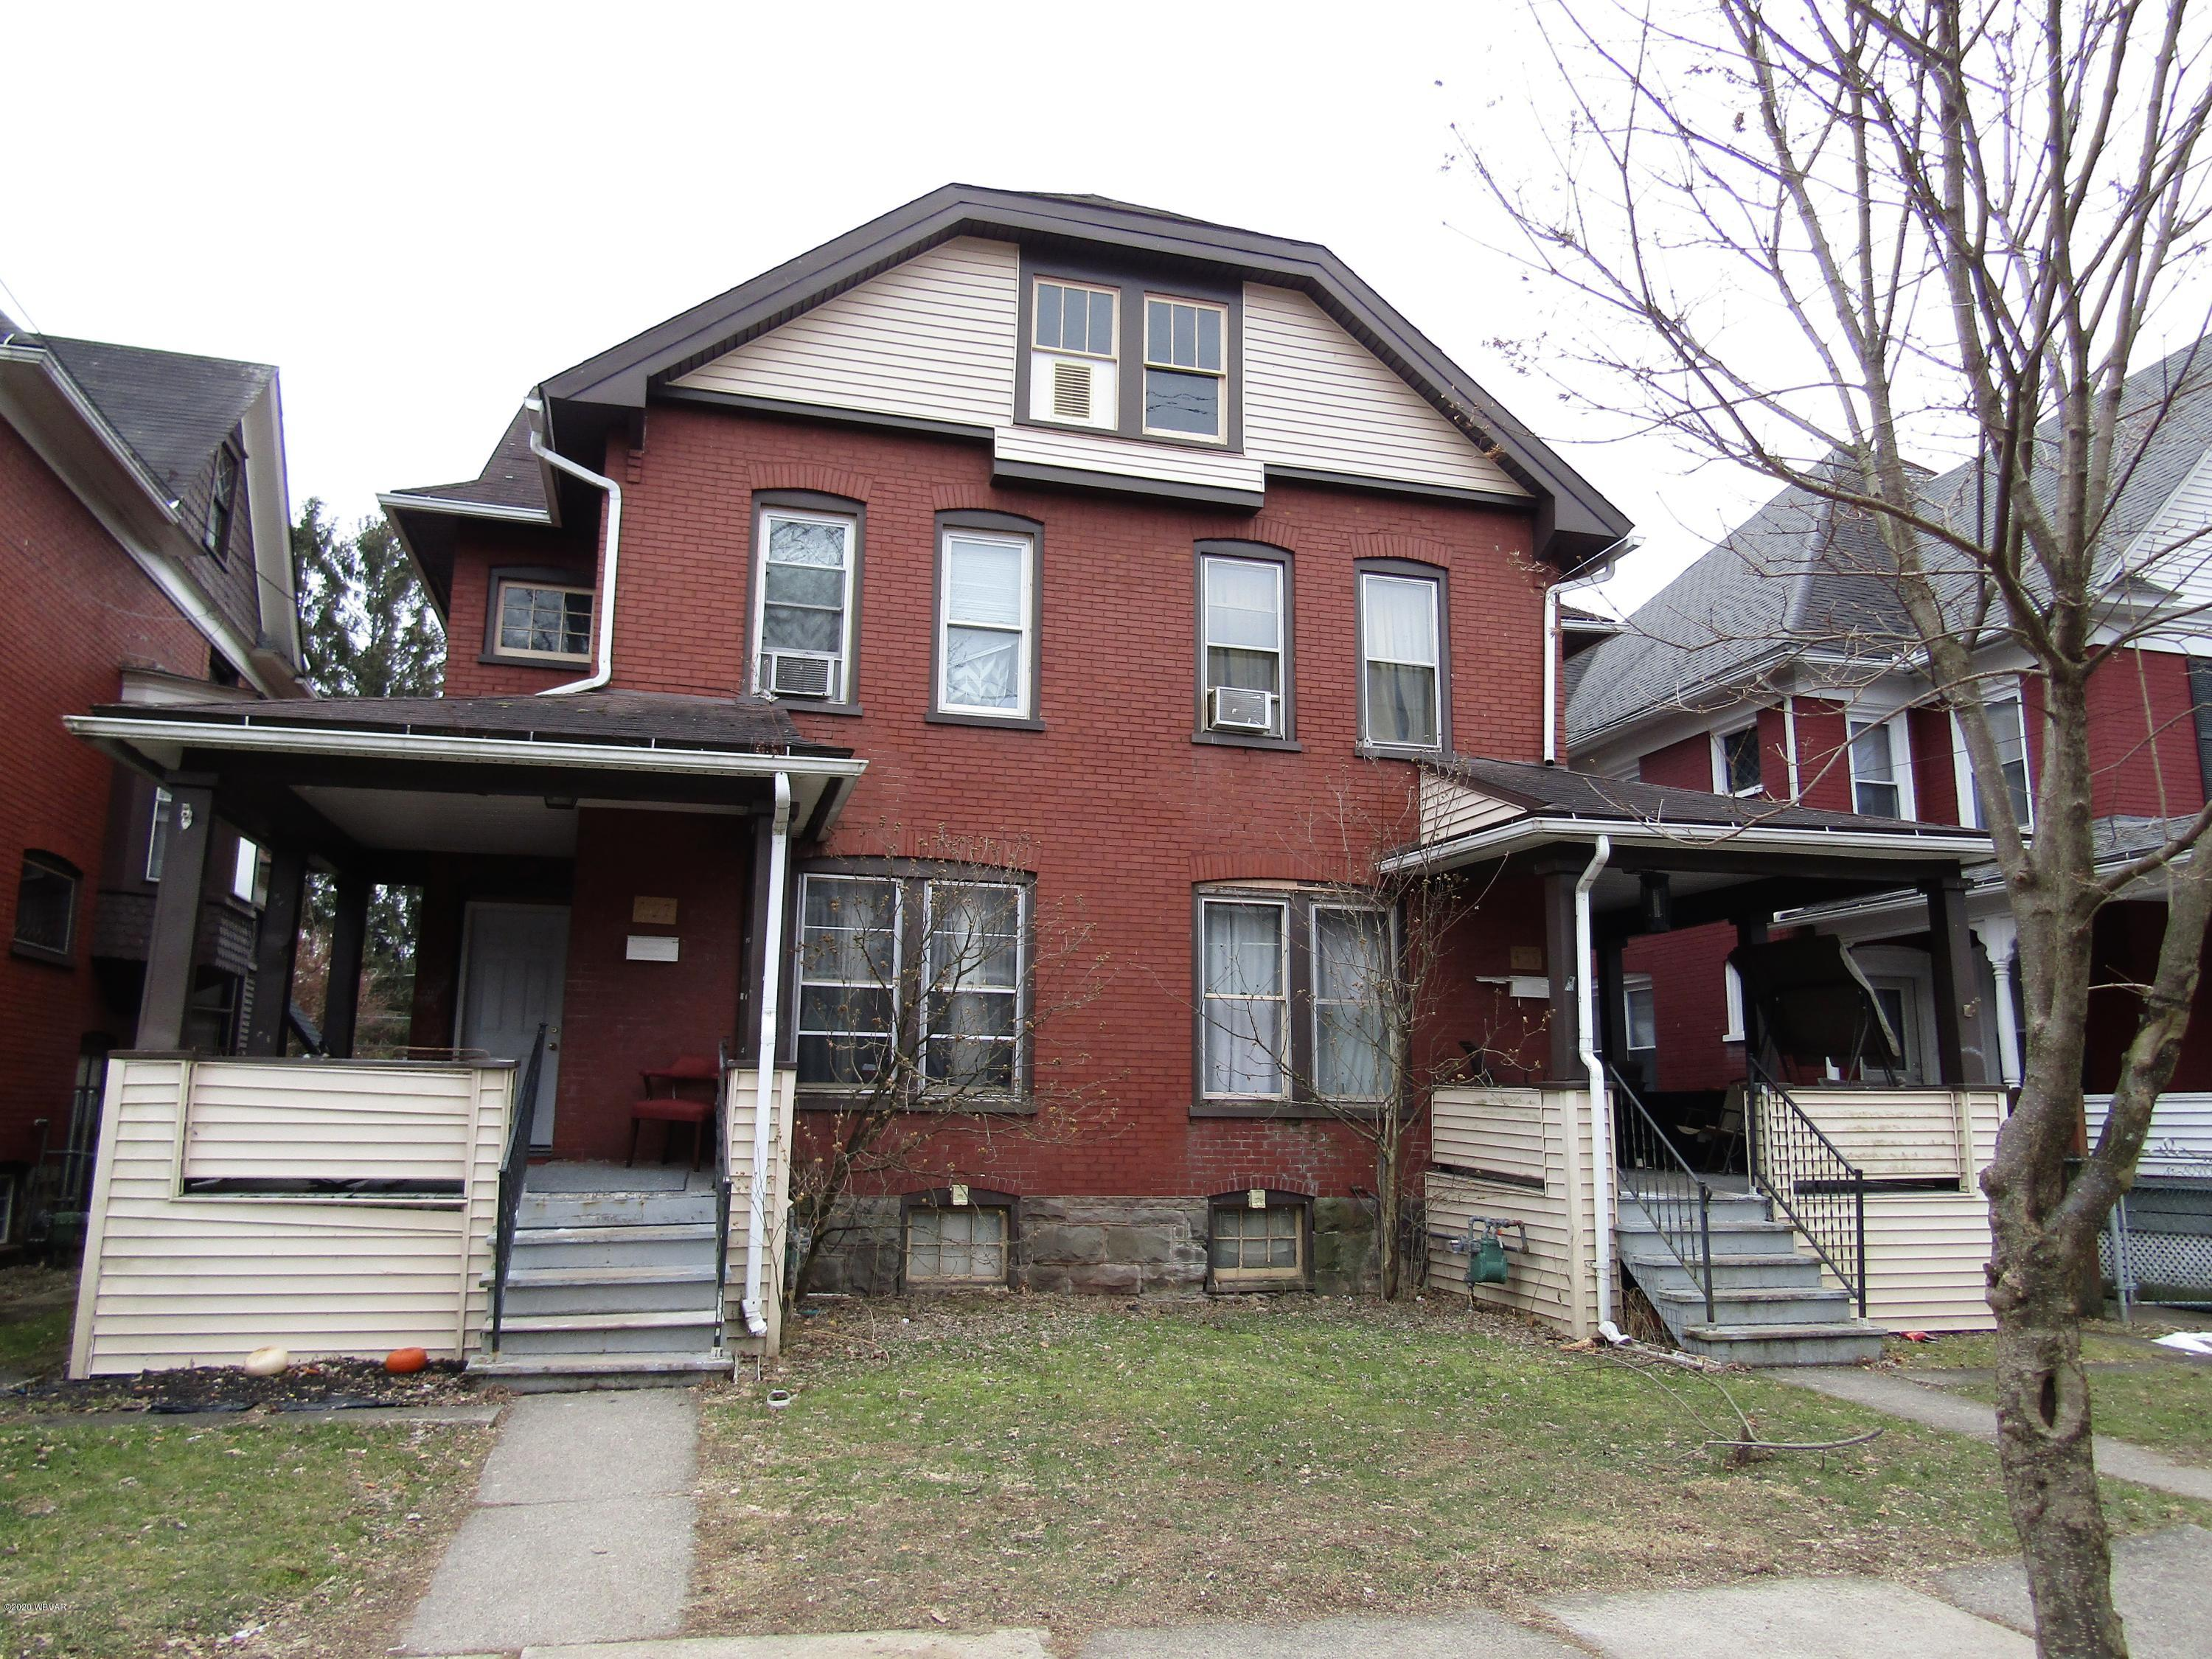 407 - 409 HAWTHORNE AVENUE, Williamsport, PA 17701, ,Multi-units,For sale,HAWTHORNE,WB-89501